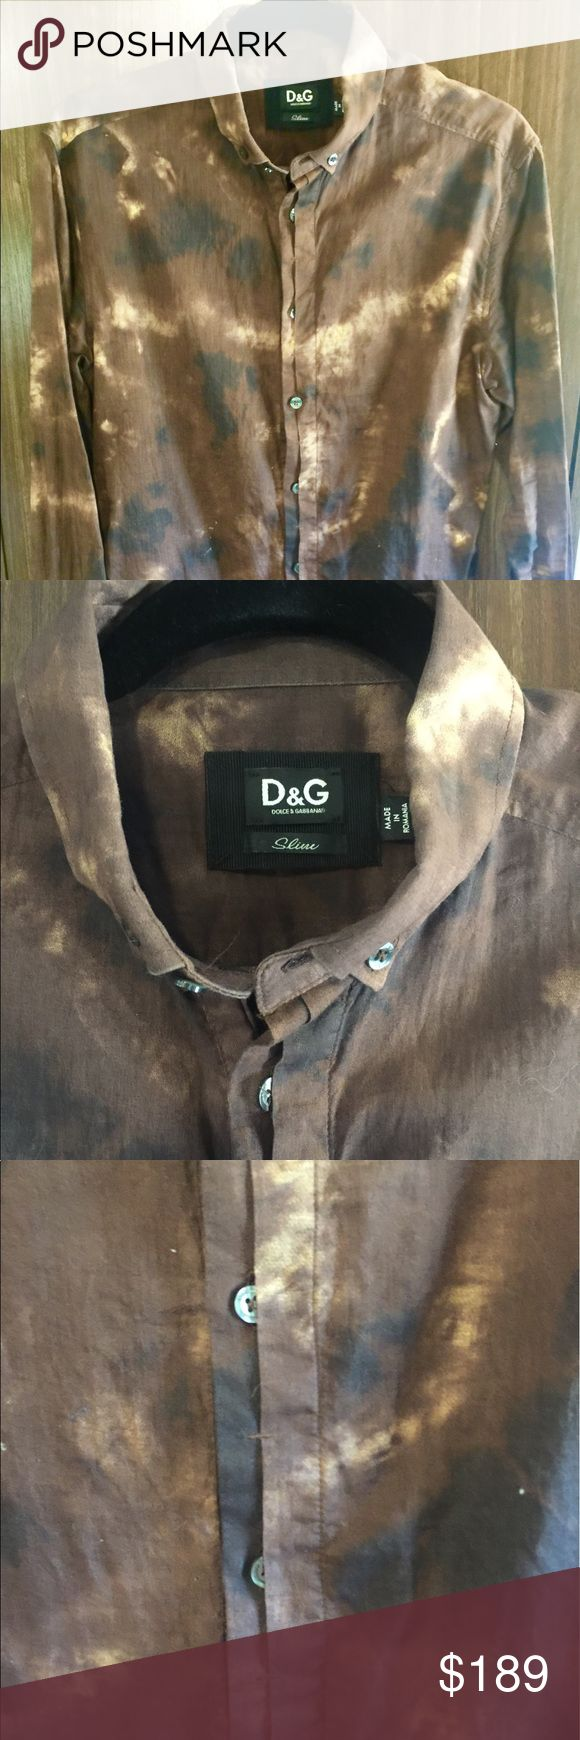 DOLCE AND GABBANA MENS BUTTON DOWN SLIM FIT SHIRT Great condition. Authentic Dolce and Gabbana Men's Slim Fit Brown Printed Button Down Shirt. Size 48. 100% Cotton. Originally paid 749 for it and has only been worn a couple times. Offers welcome. Dolce & Gabbana Shirts Dress Shirts